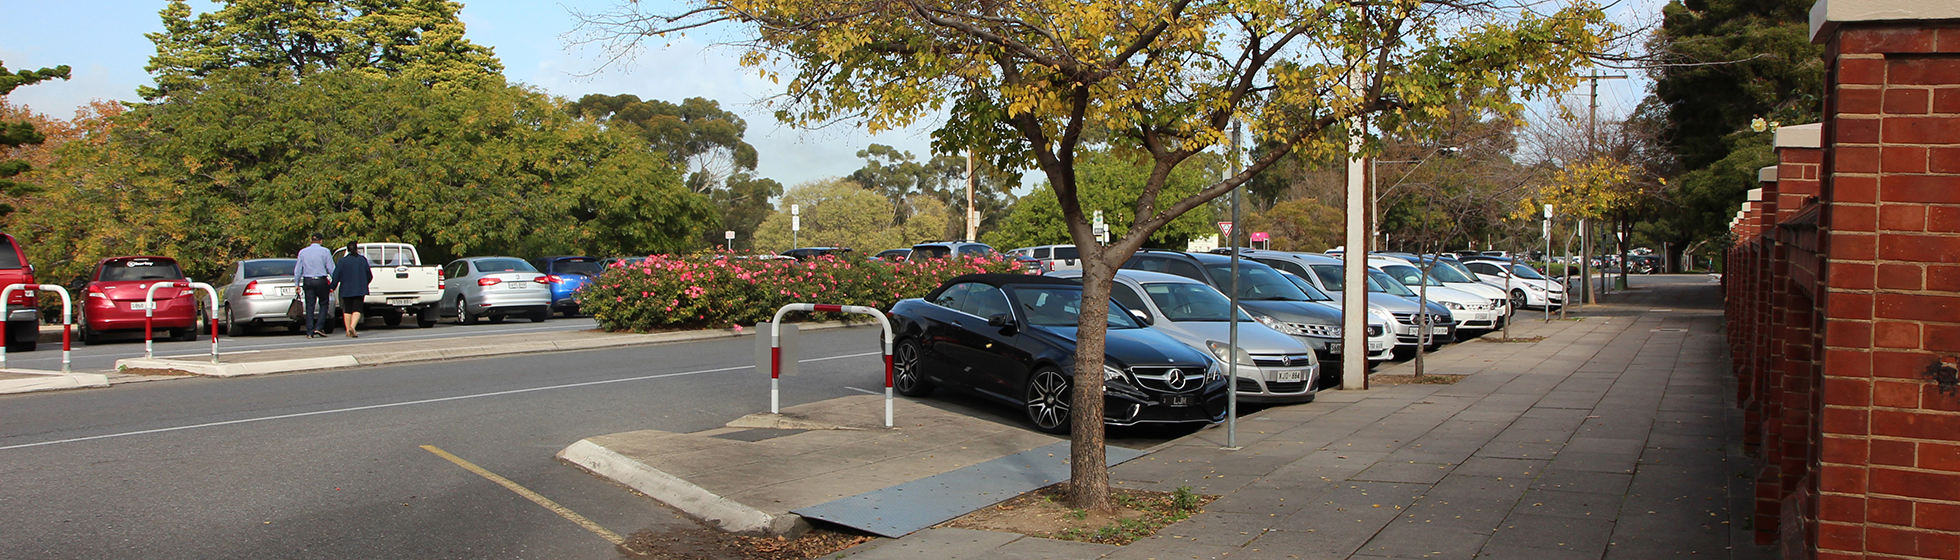 Car park at north adelaide hospital